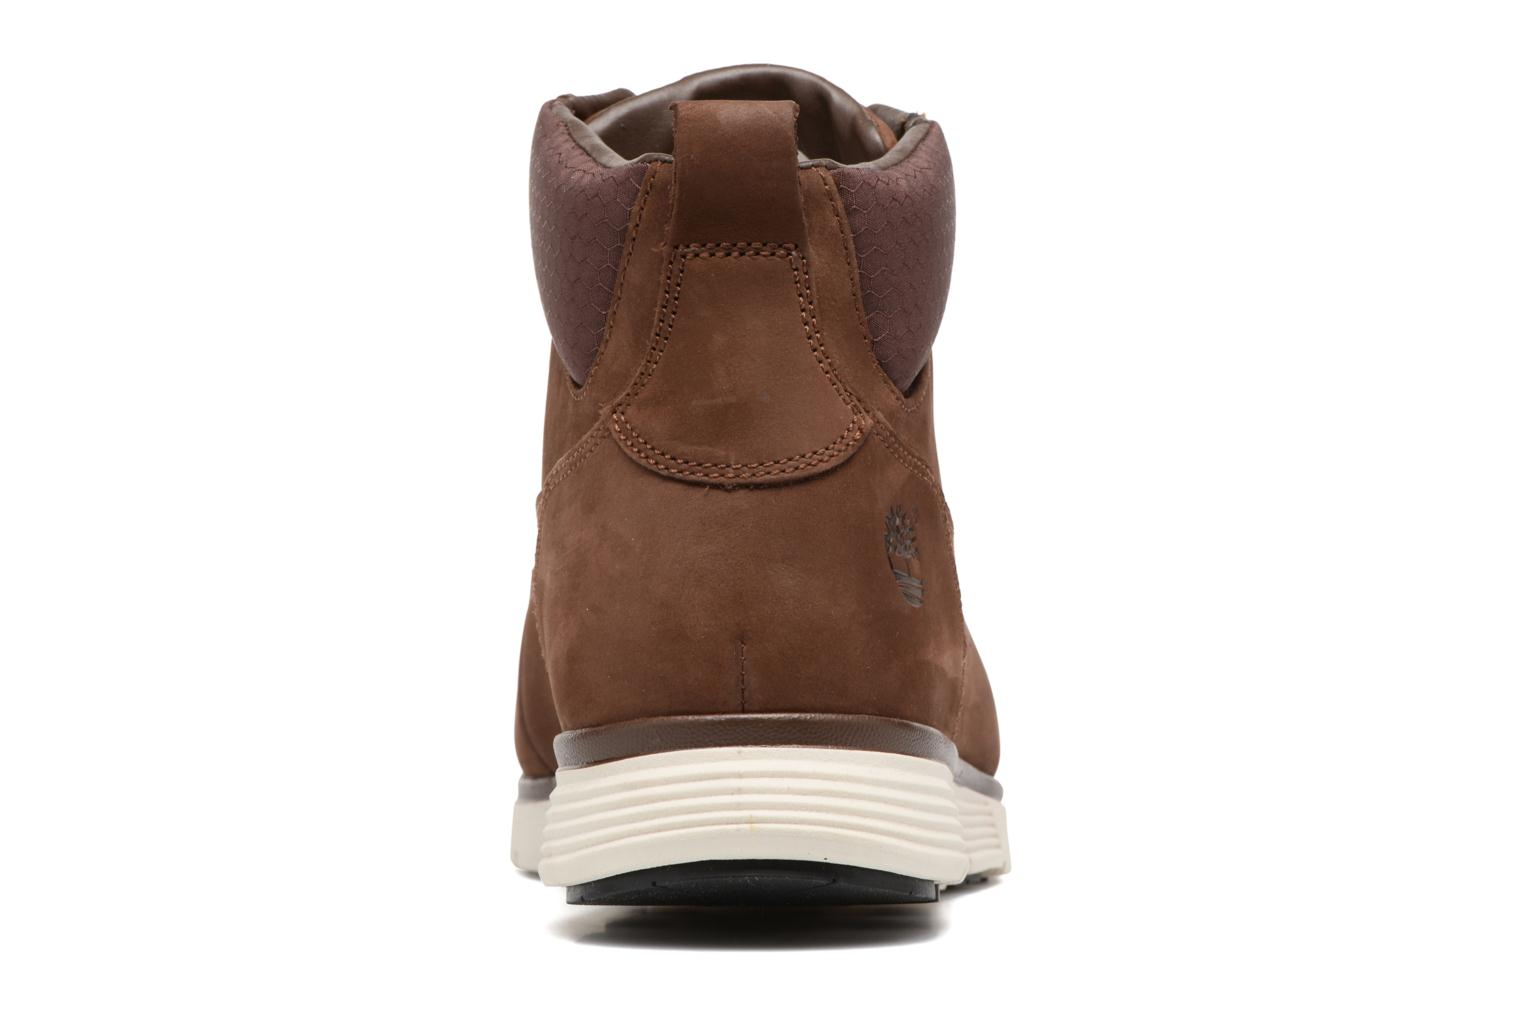 Killington Chukka 2 Potting Soil Nubuck